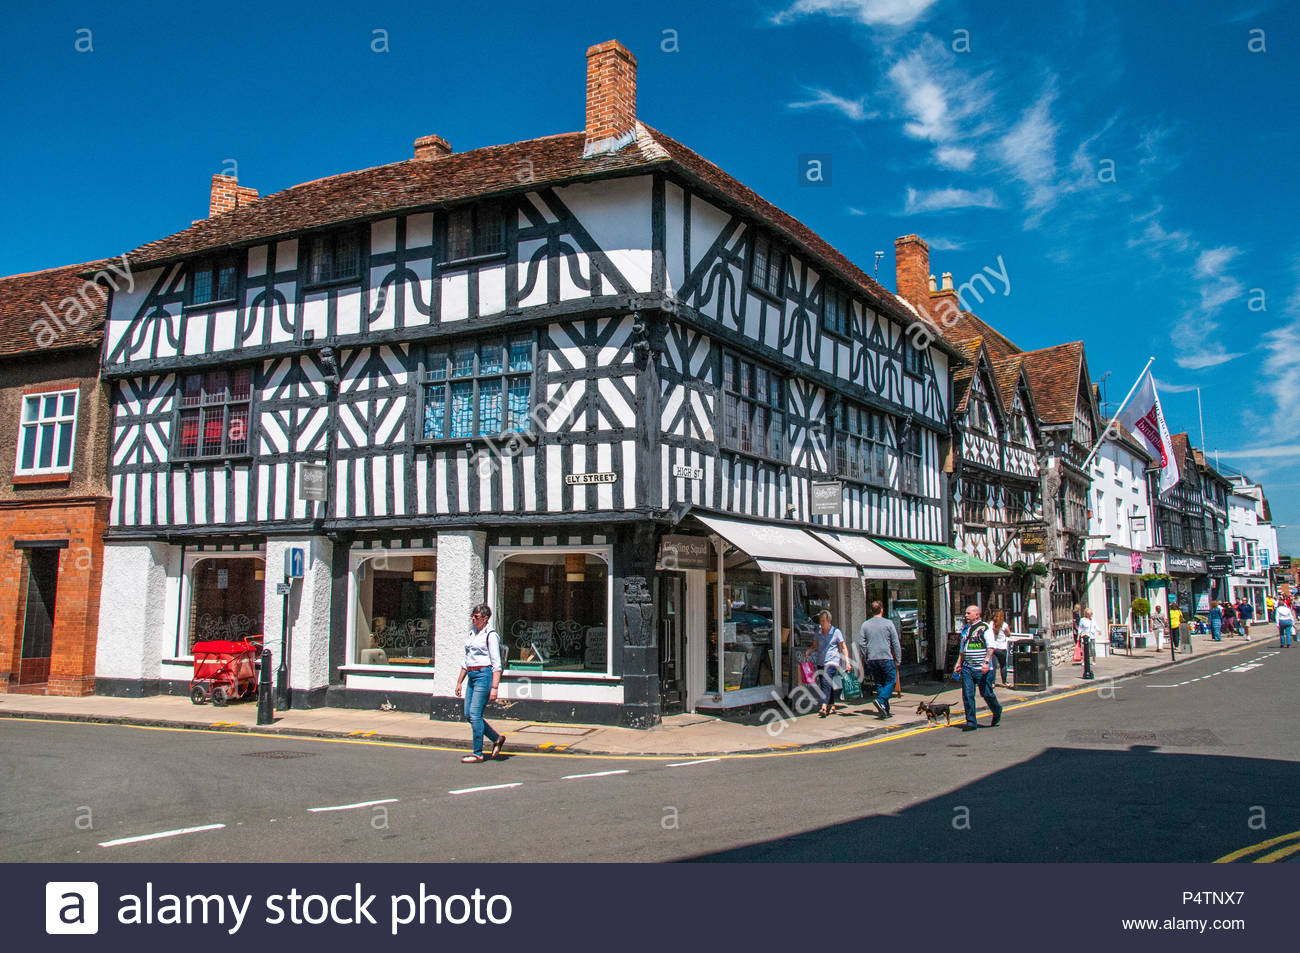 Ely Street Stock Photos Ely Street Stock Images Alamy